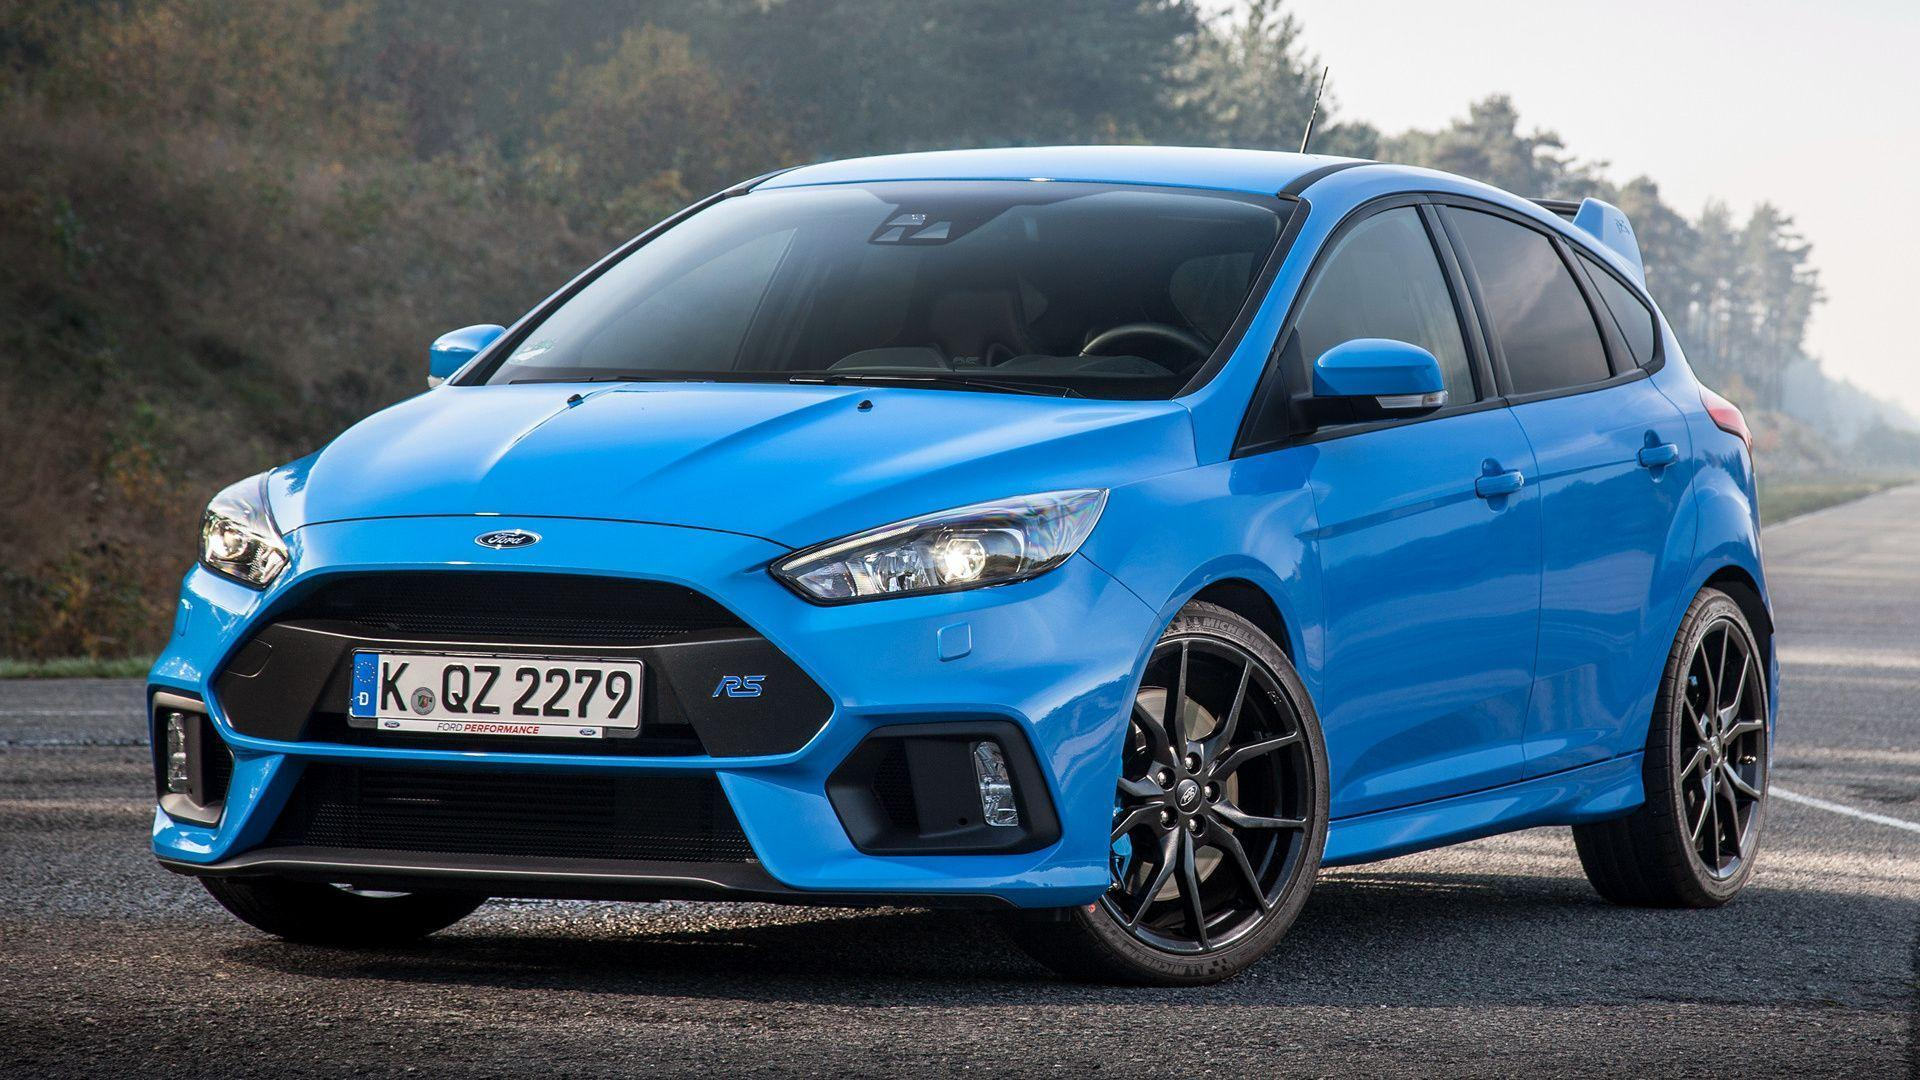 Ford Focus Rs Wallpapers Collection (30+)